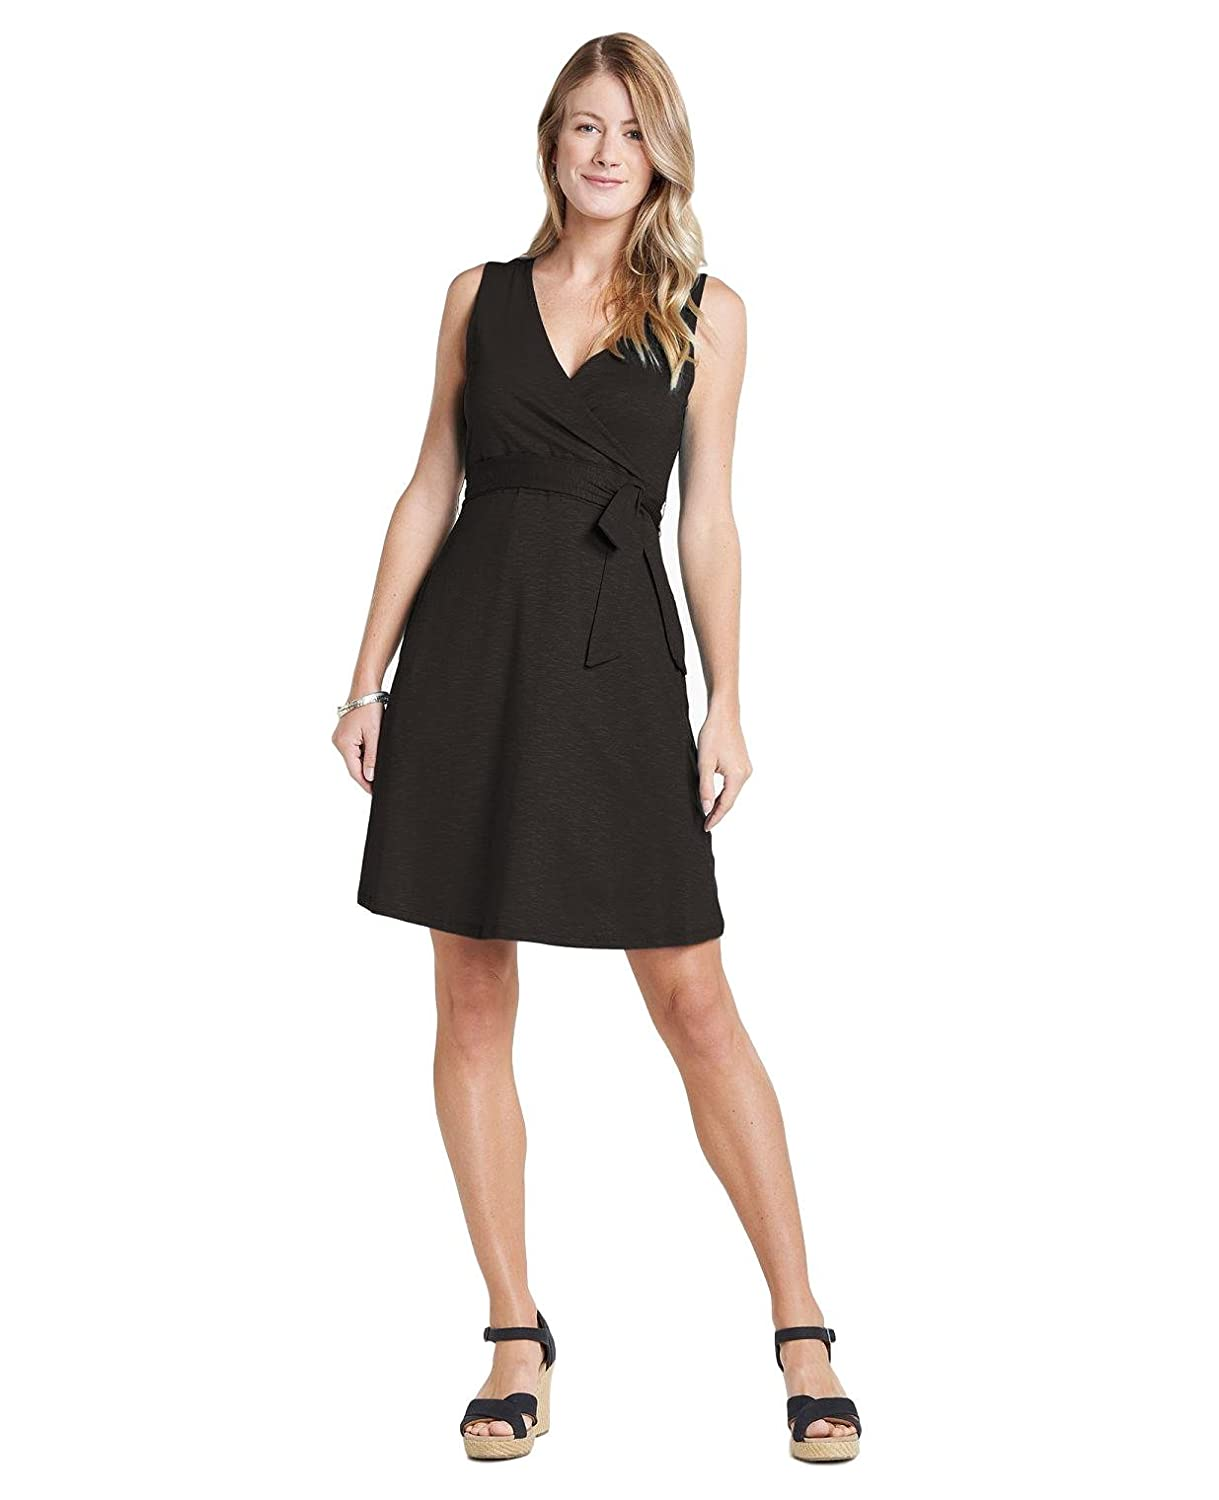 Black Small Toad&Co Cue Wrap SL Dress - Women's